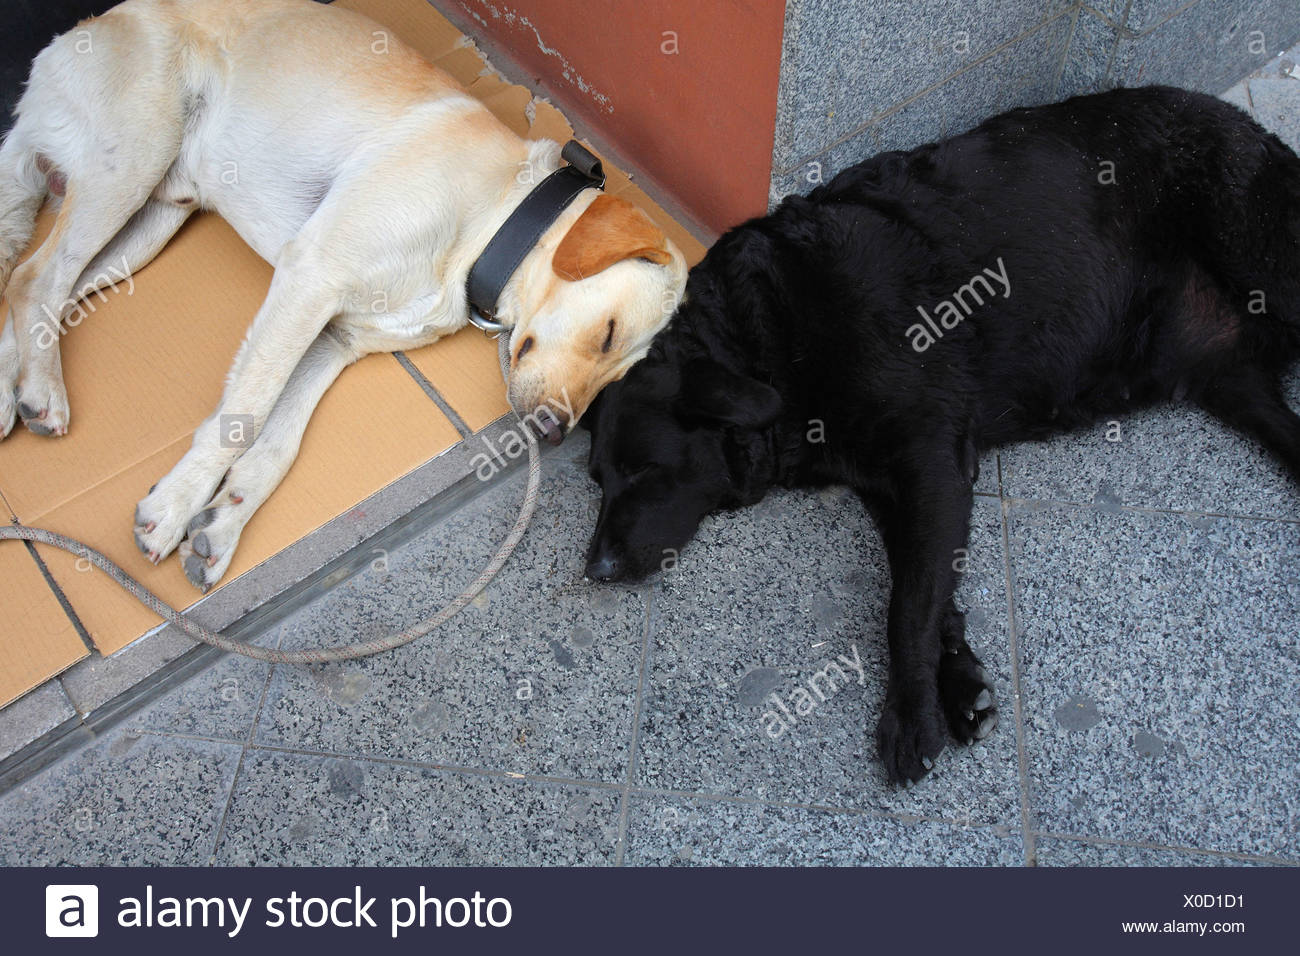 Let sleeping dogs lie two sleeping dogs - Stock Image